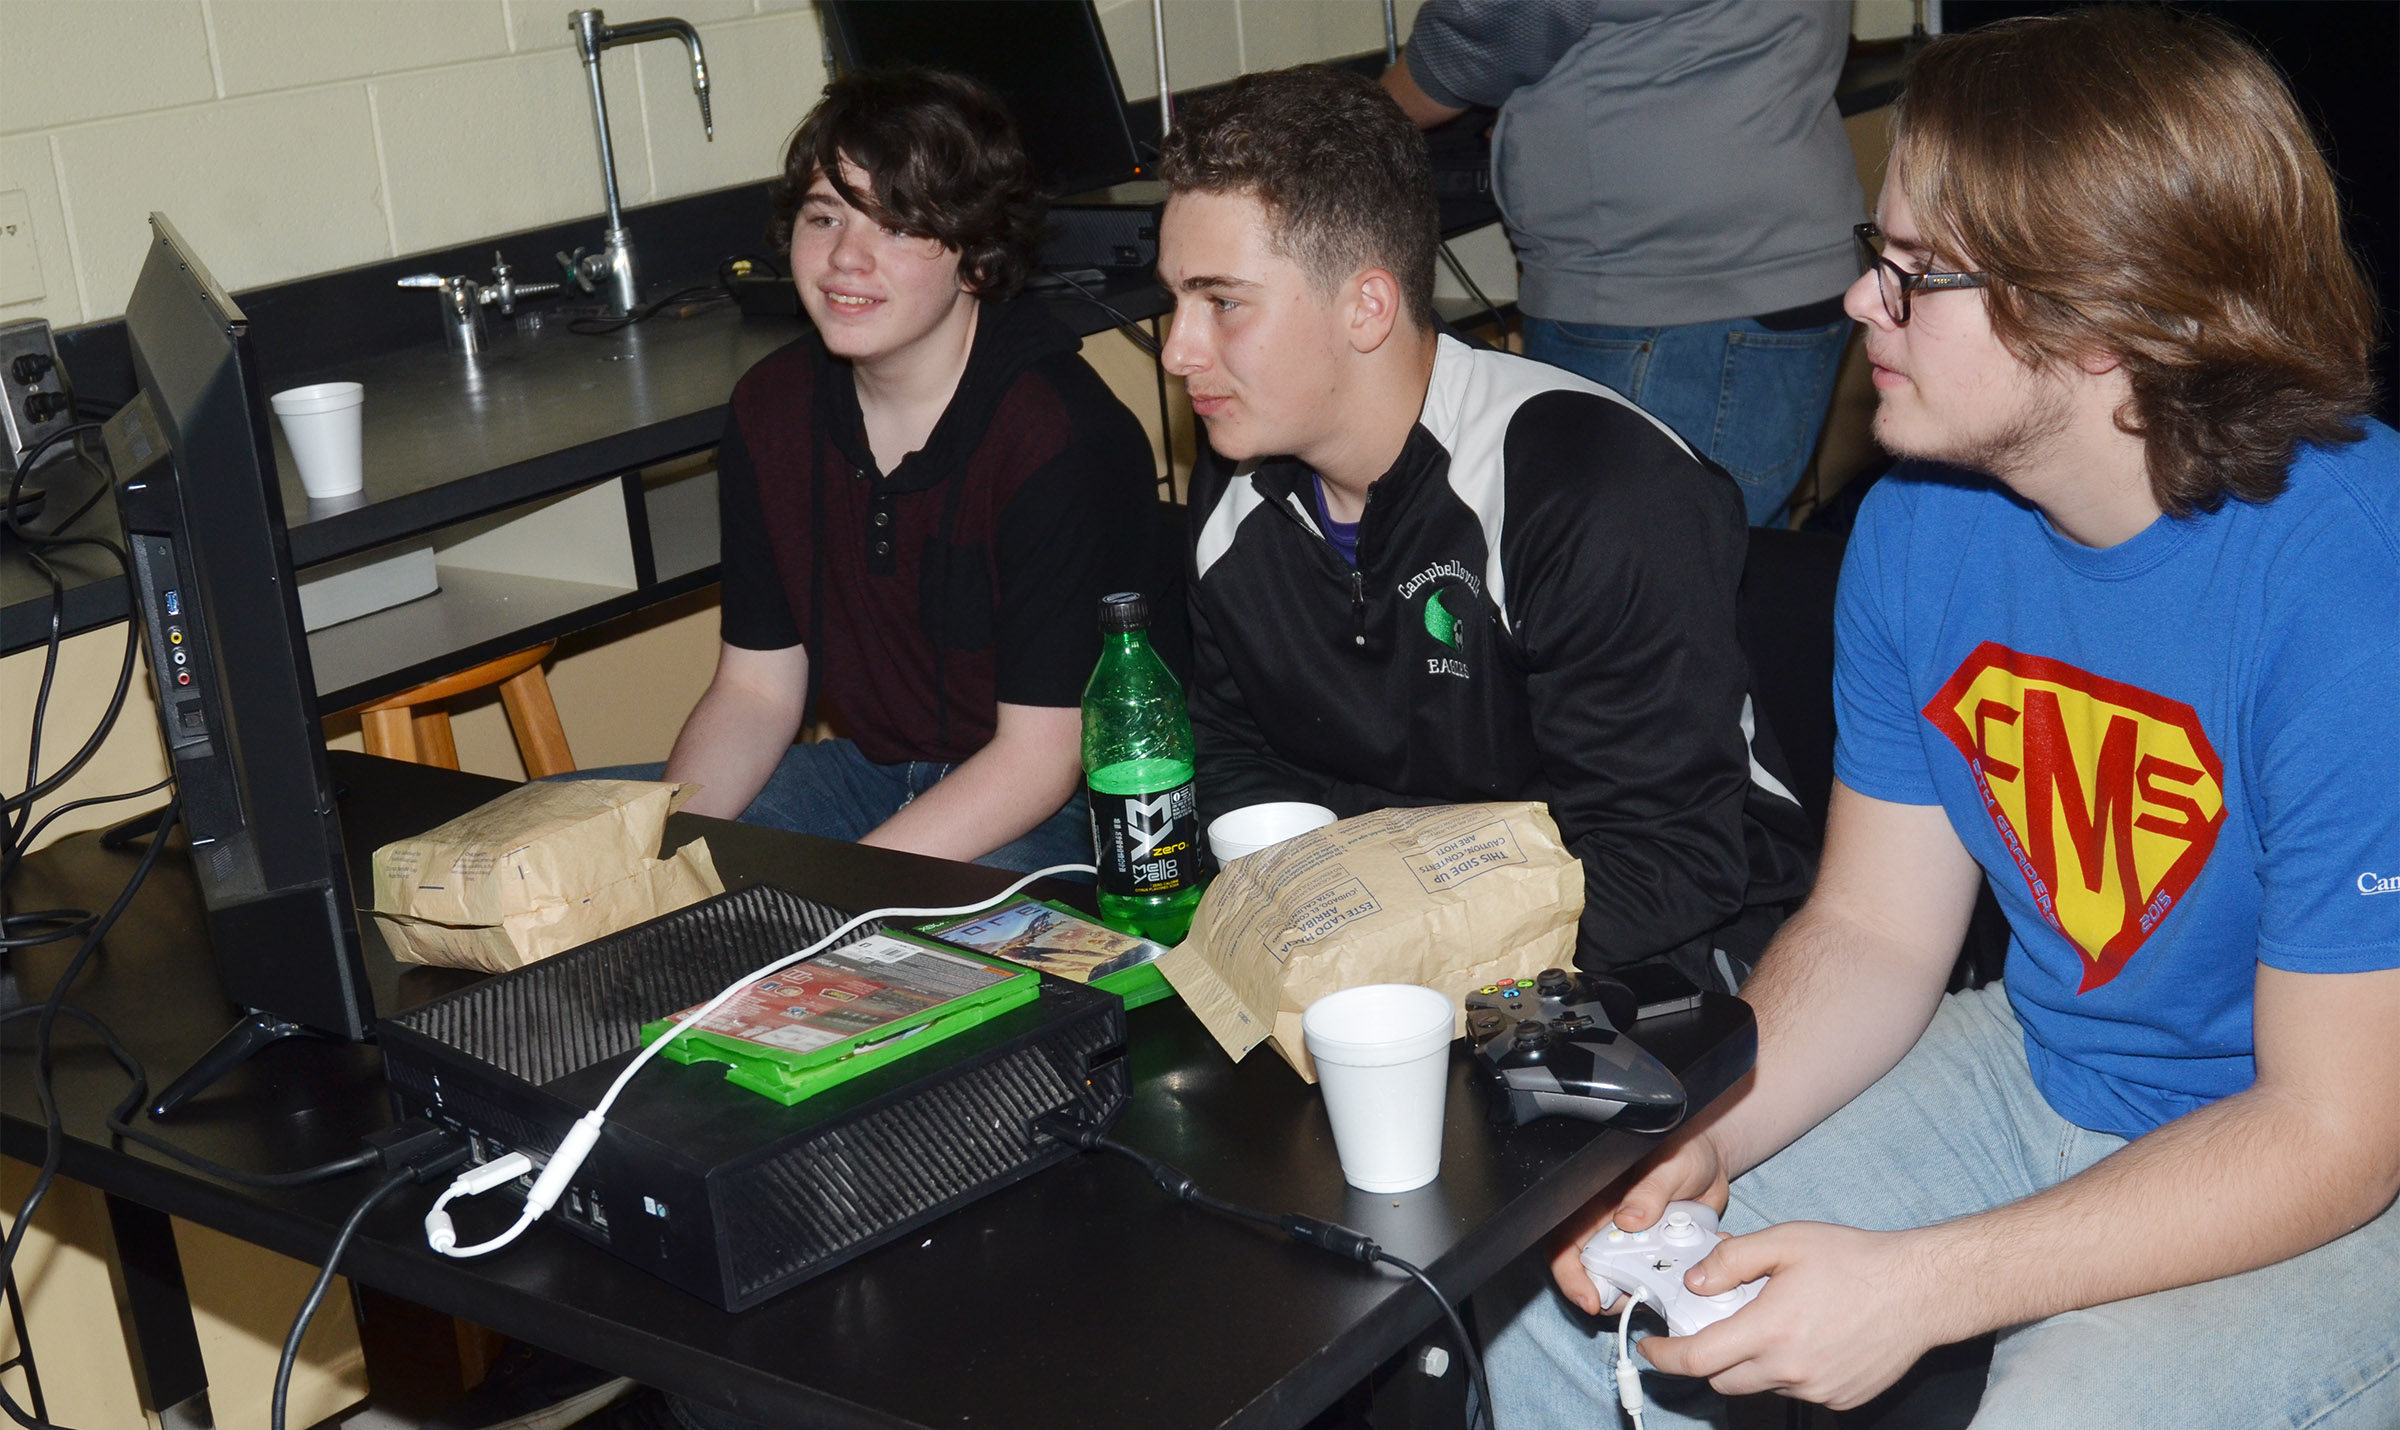 From left, CHS sophomores Lathan Vincent, Brody Weeks and John Netherland play video games.